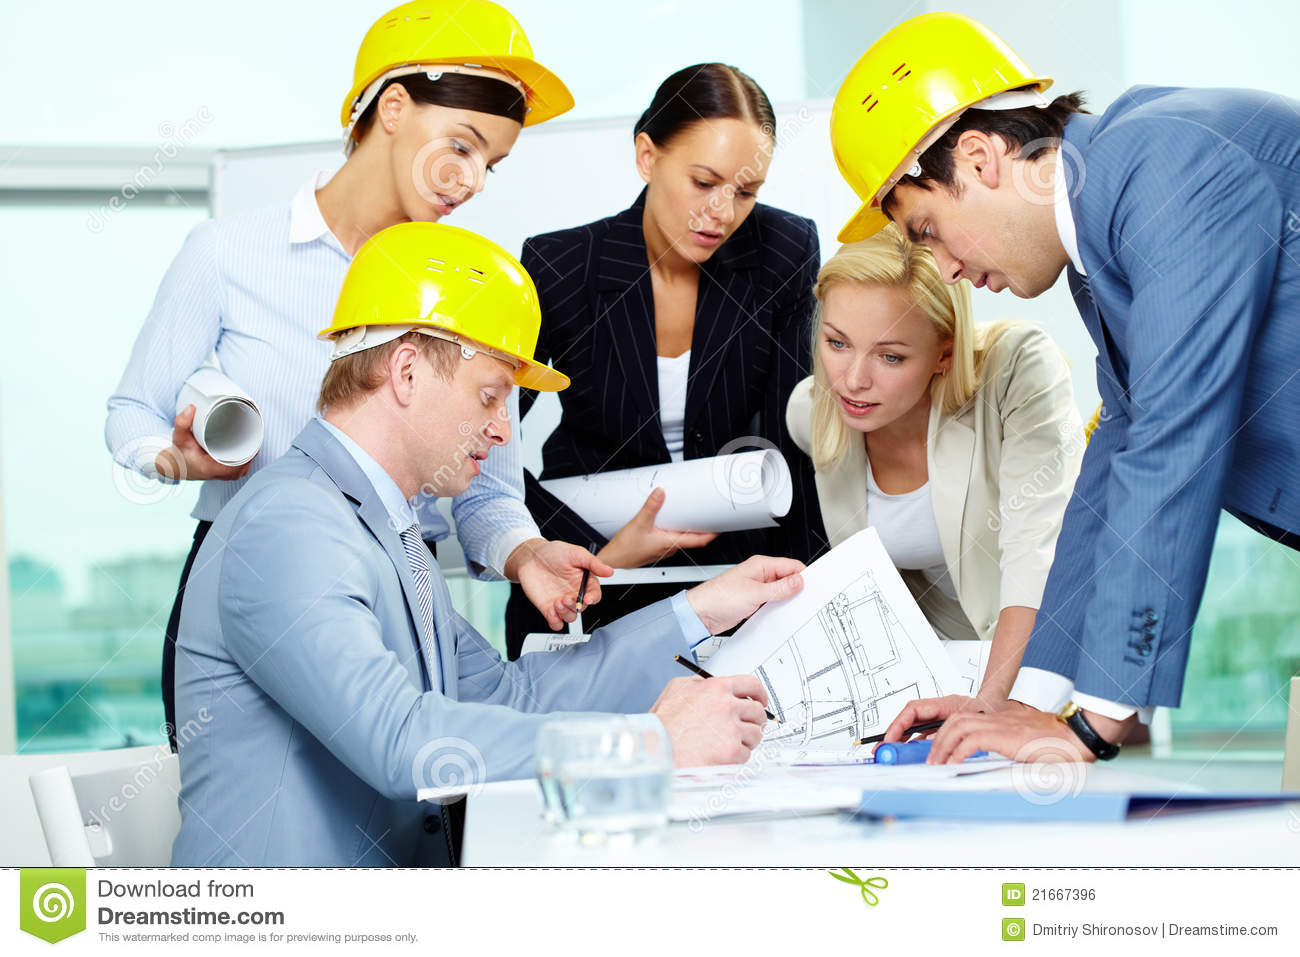 Architects at work stock photo. Image of holding, career ...